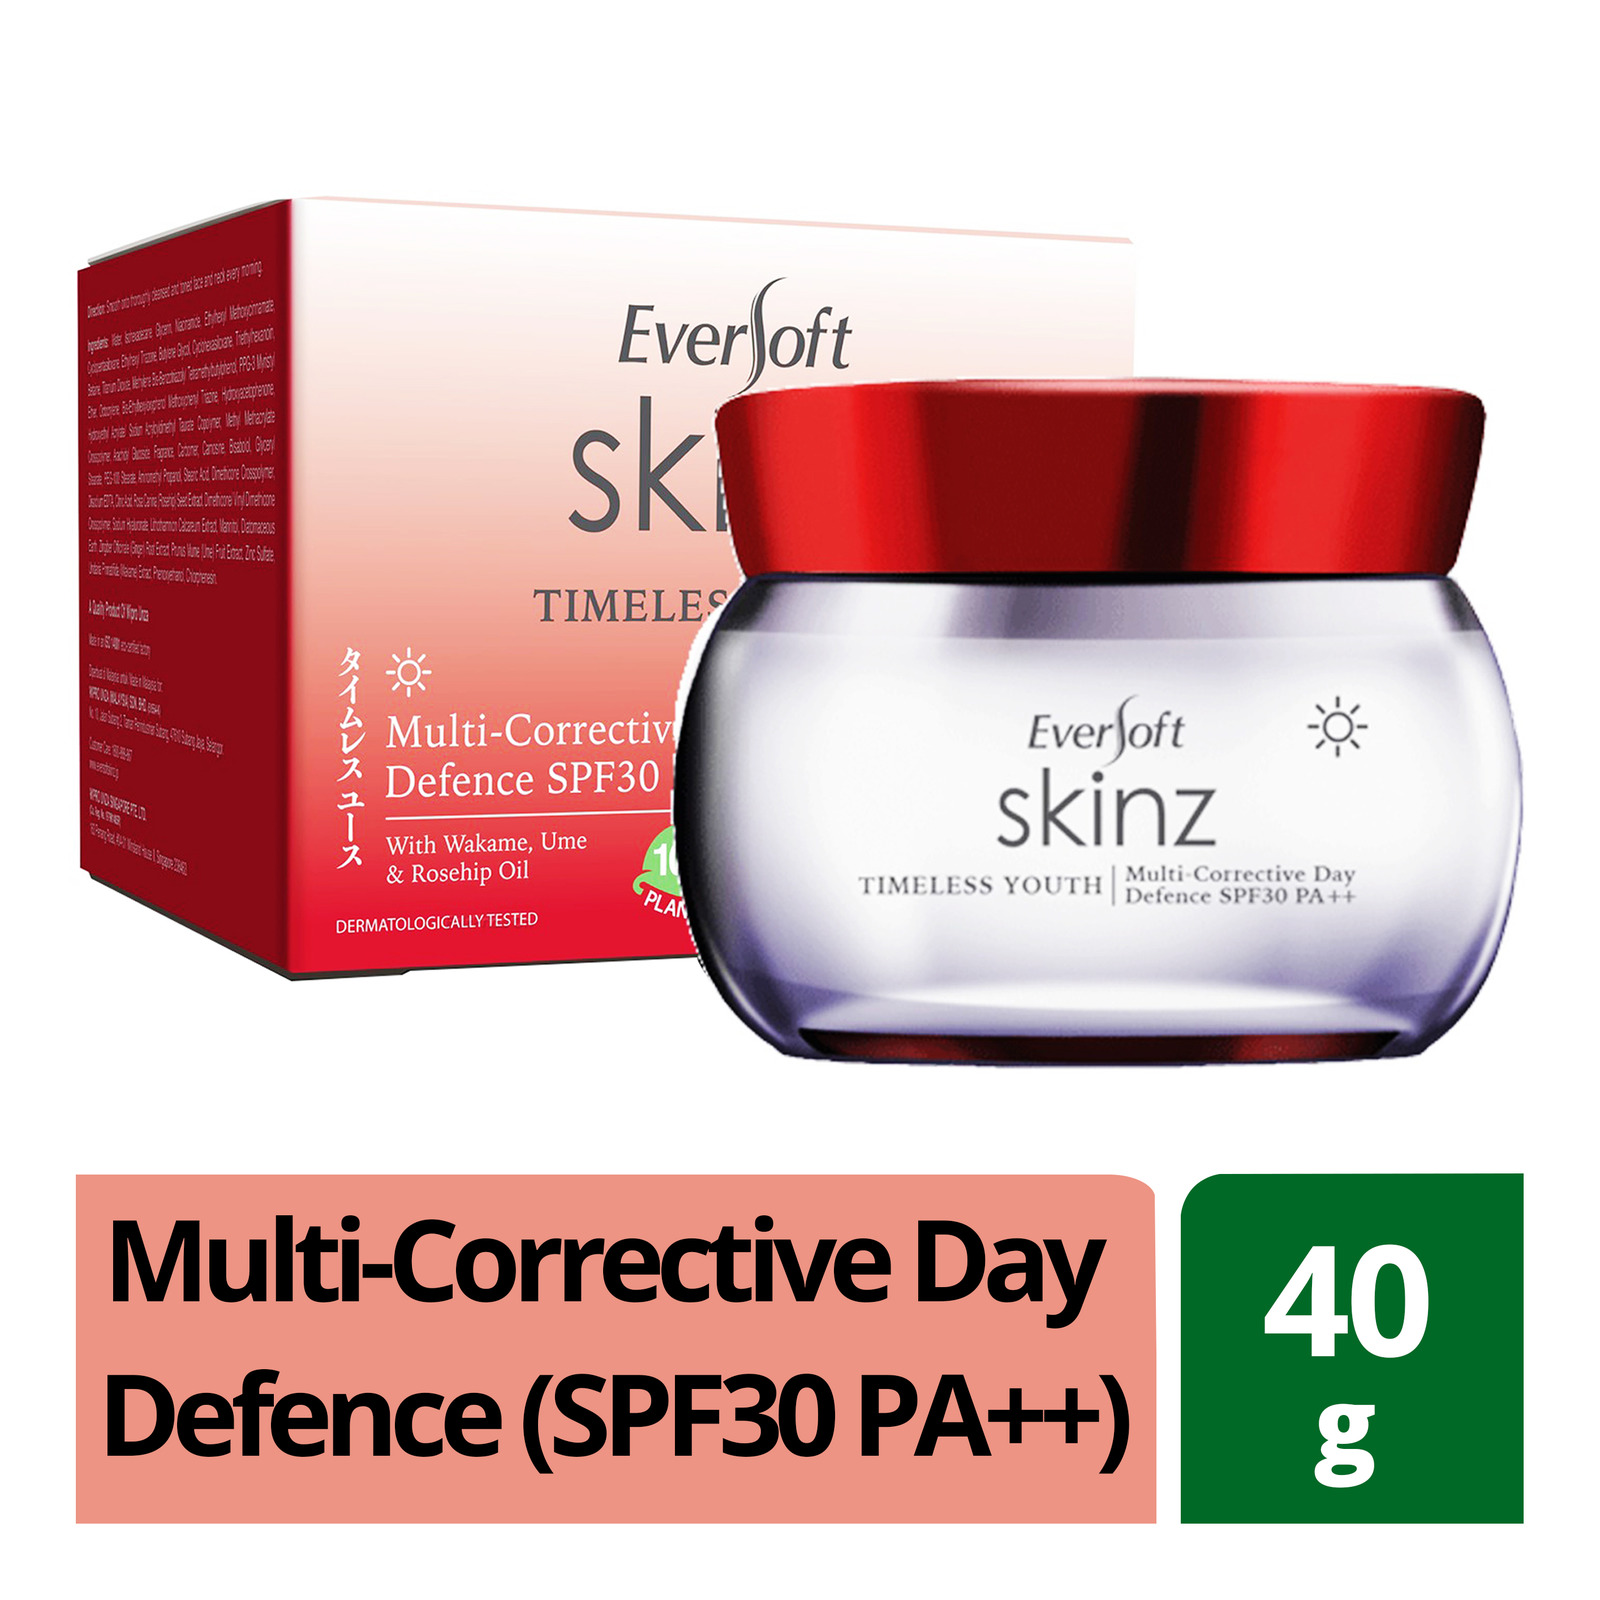 Eversoft Timeless Youth Multi-Corrective Day Defence (SPF30 PA++)